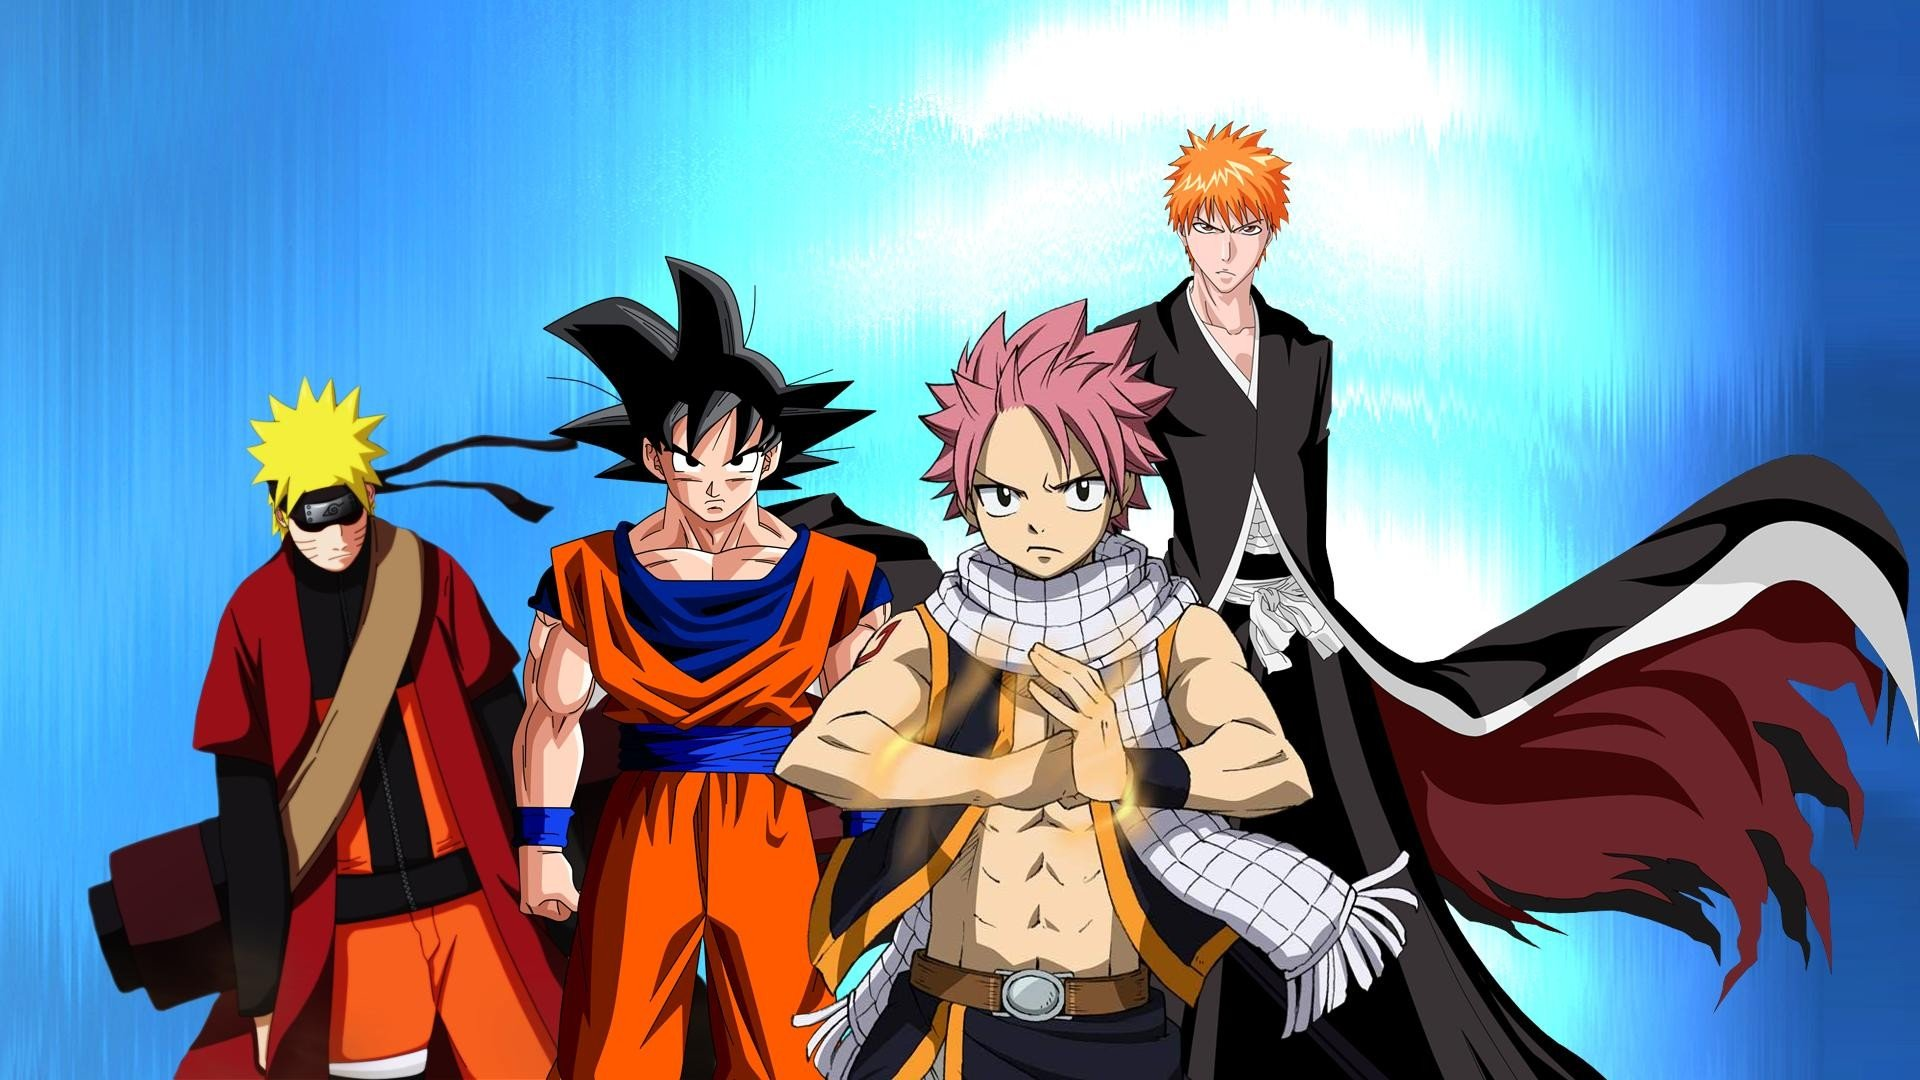 Goku Naruto Ichigo Natsu Cartoon HD Wallpaper   New HD Wallpapers 1920x1080